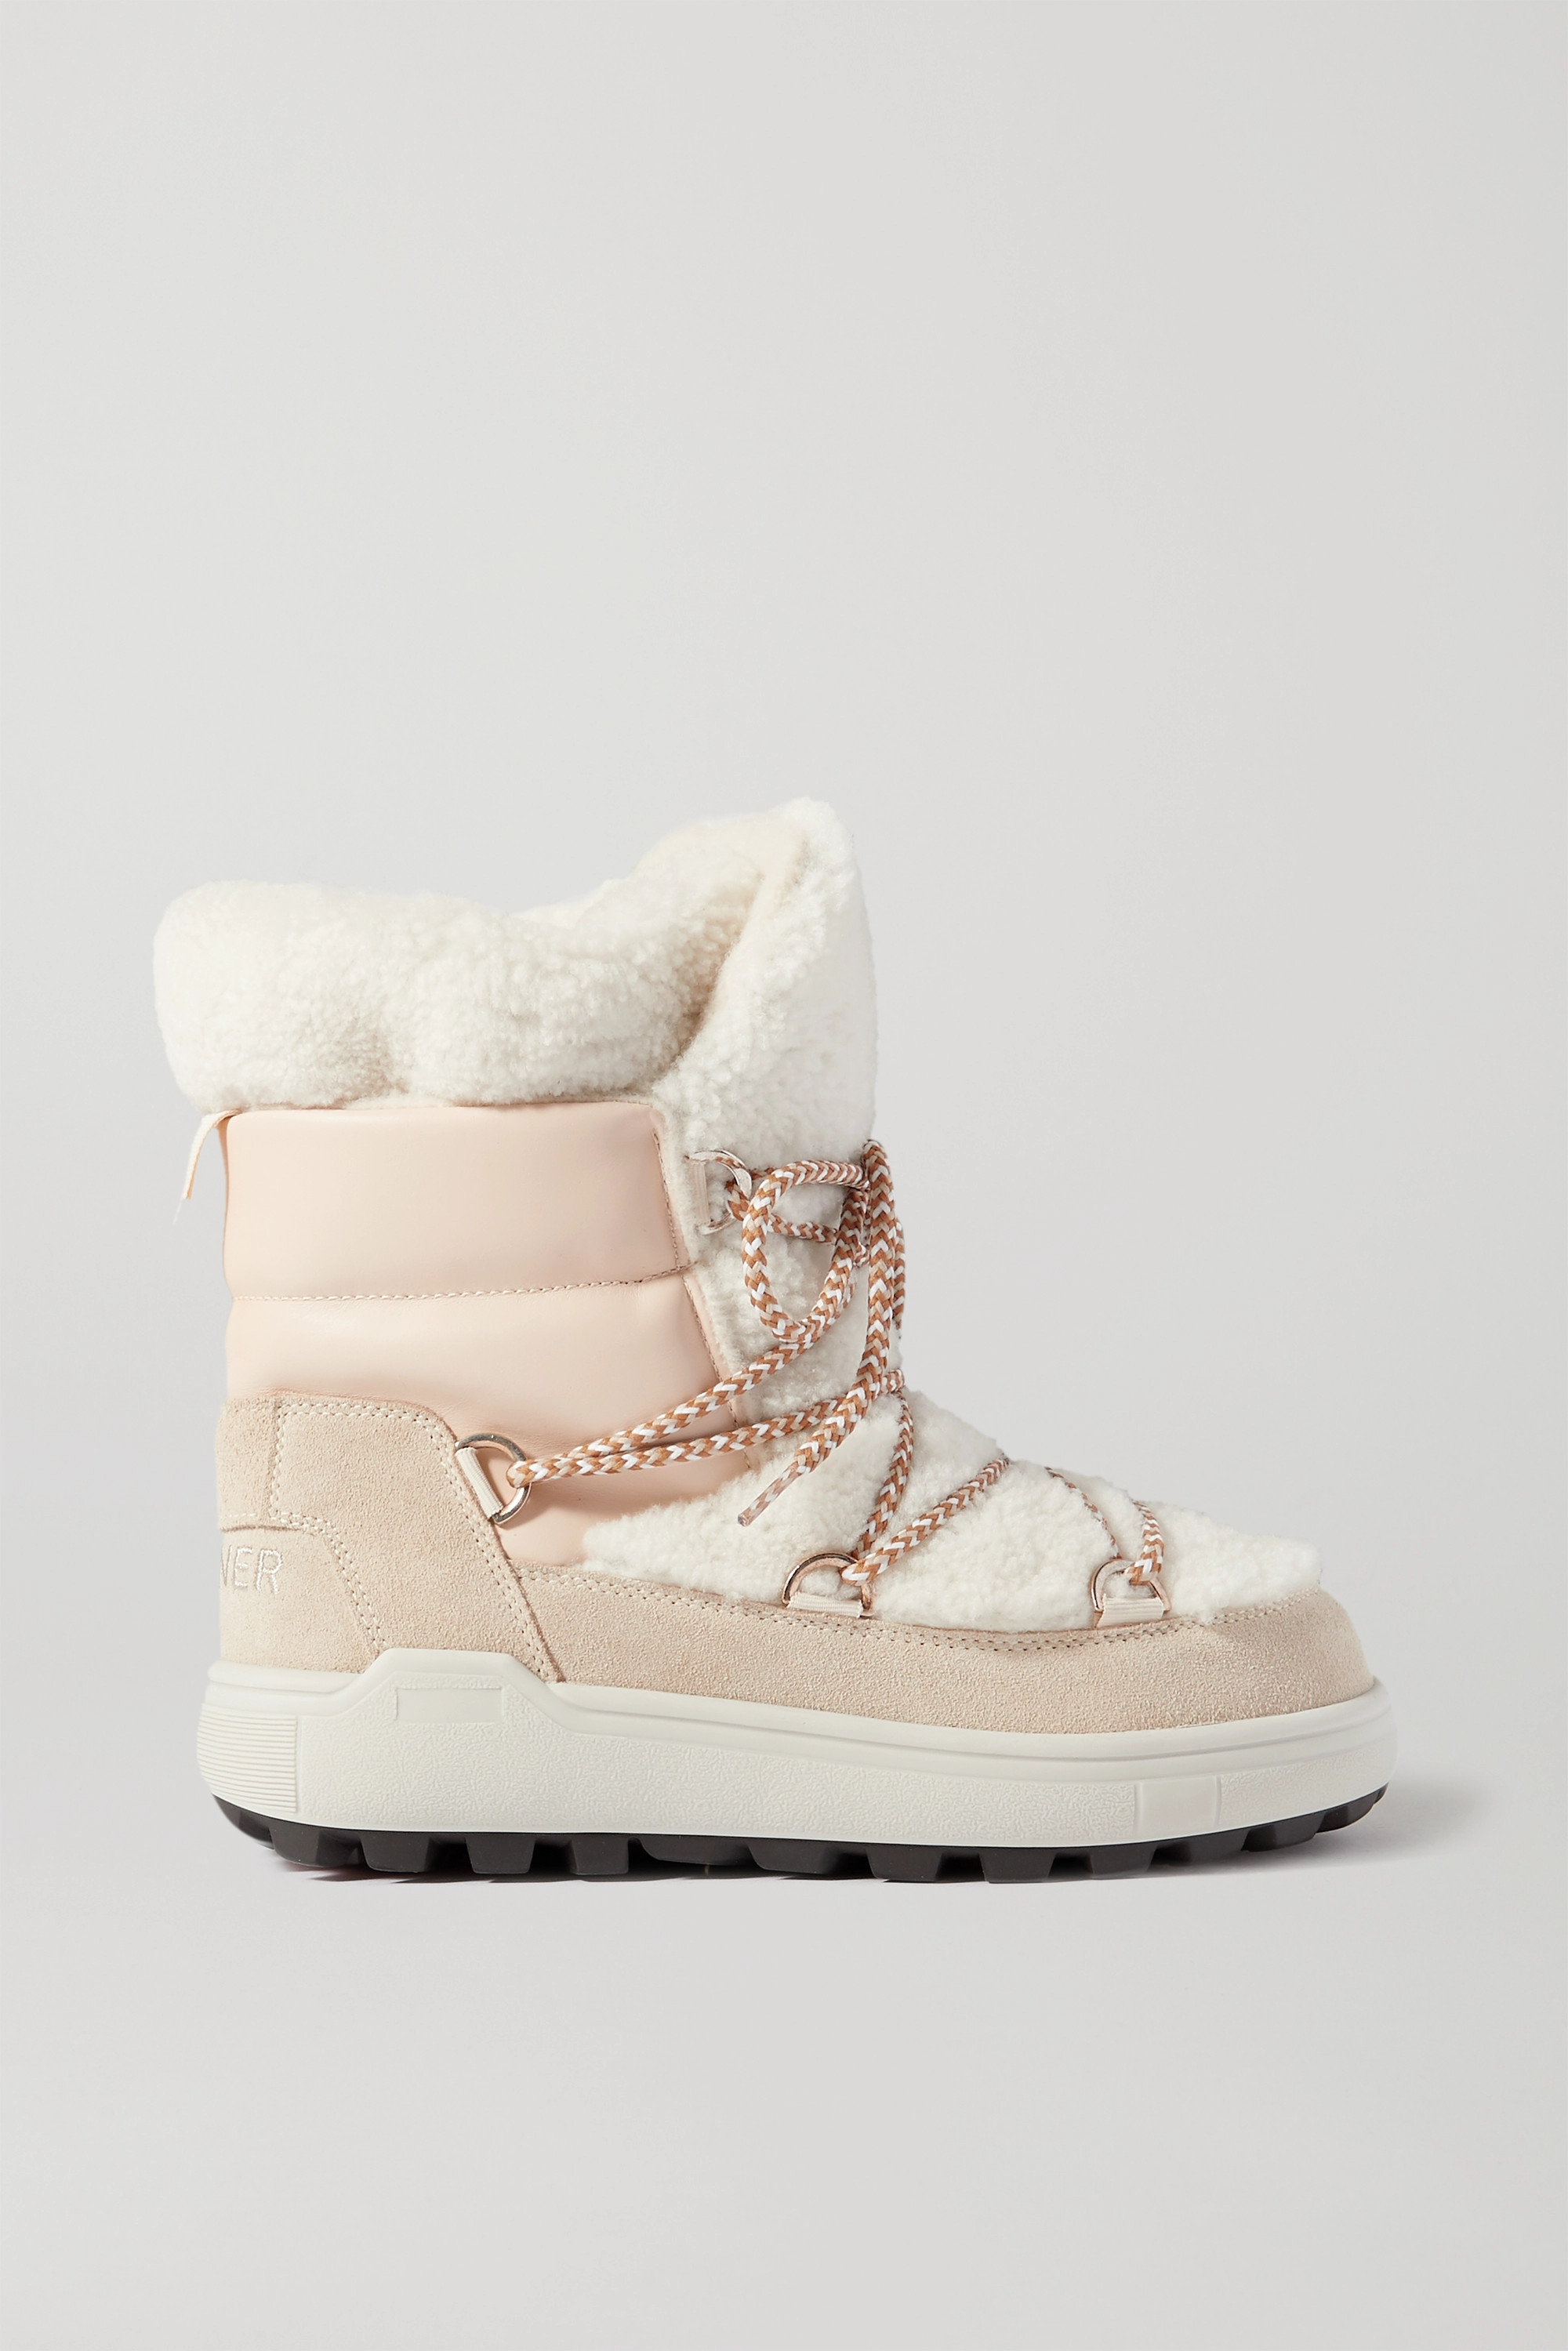 Bogner Chamonix 3 suede, leather and shearling snow boots